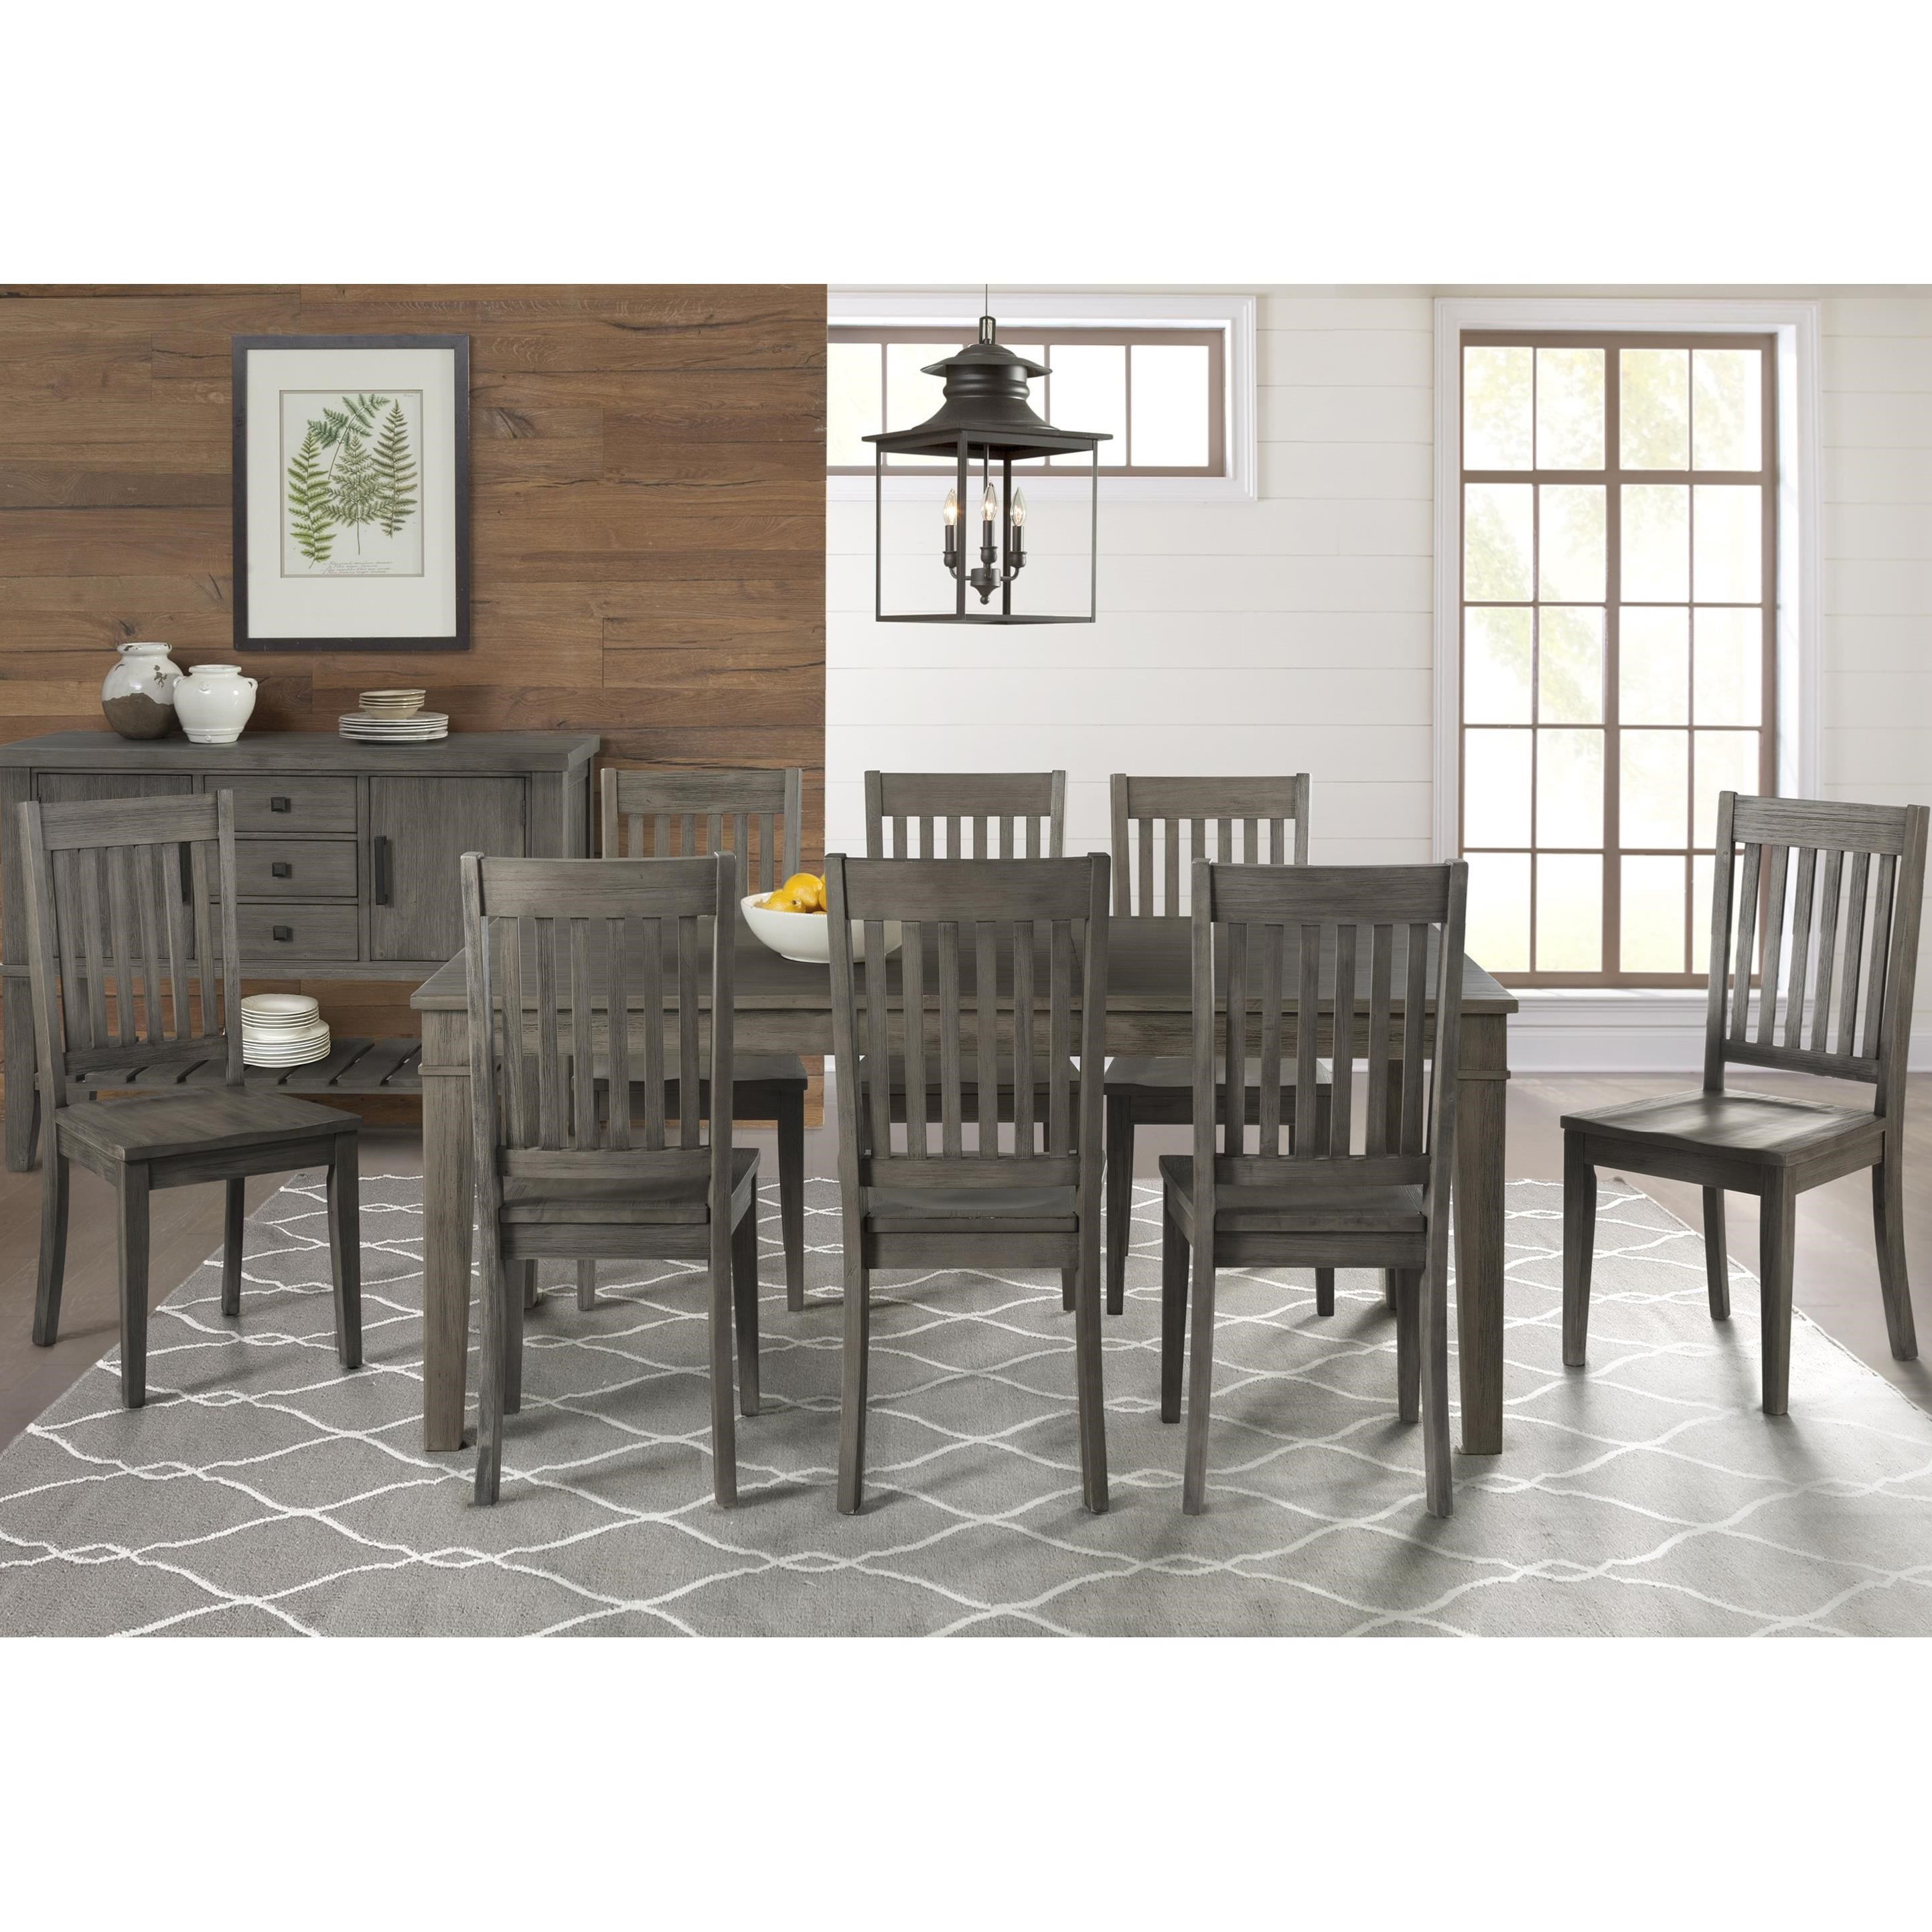 Huron Transitional Table and Chair Set by AAmerica at Mueller Furniture